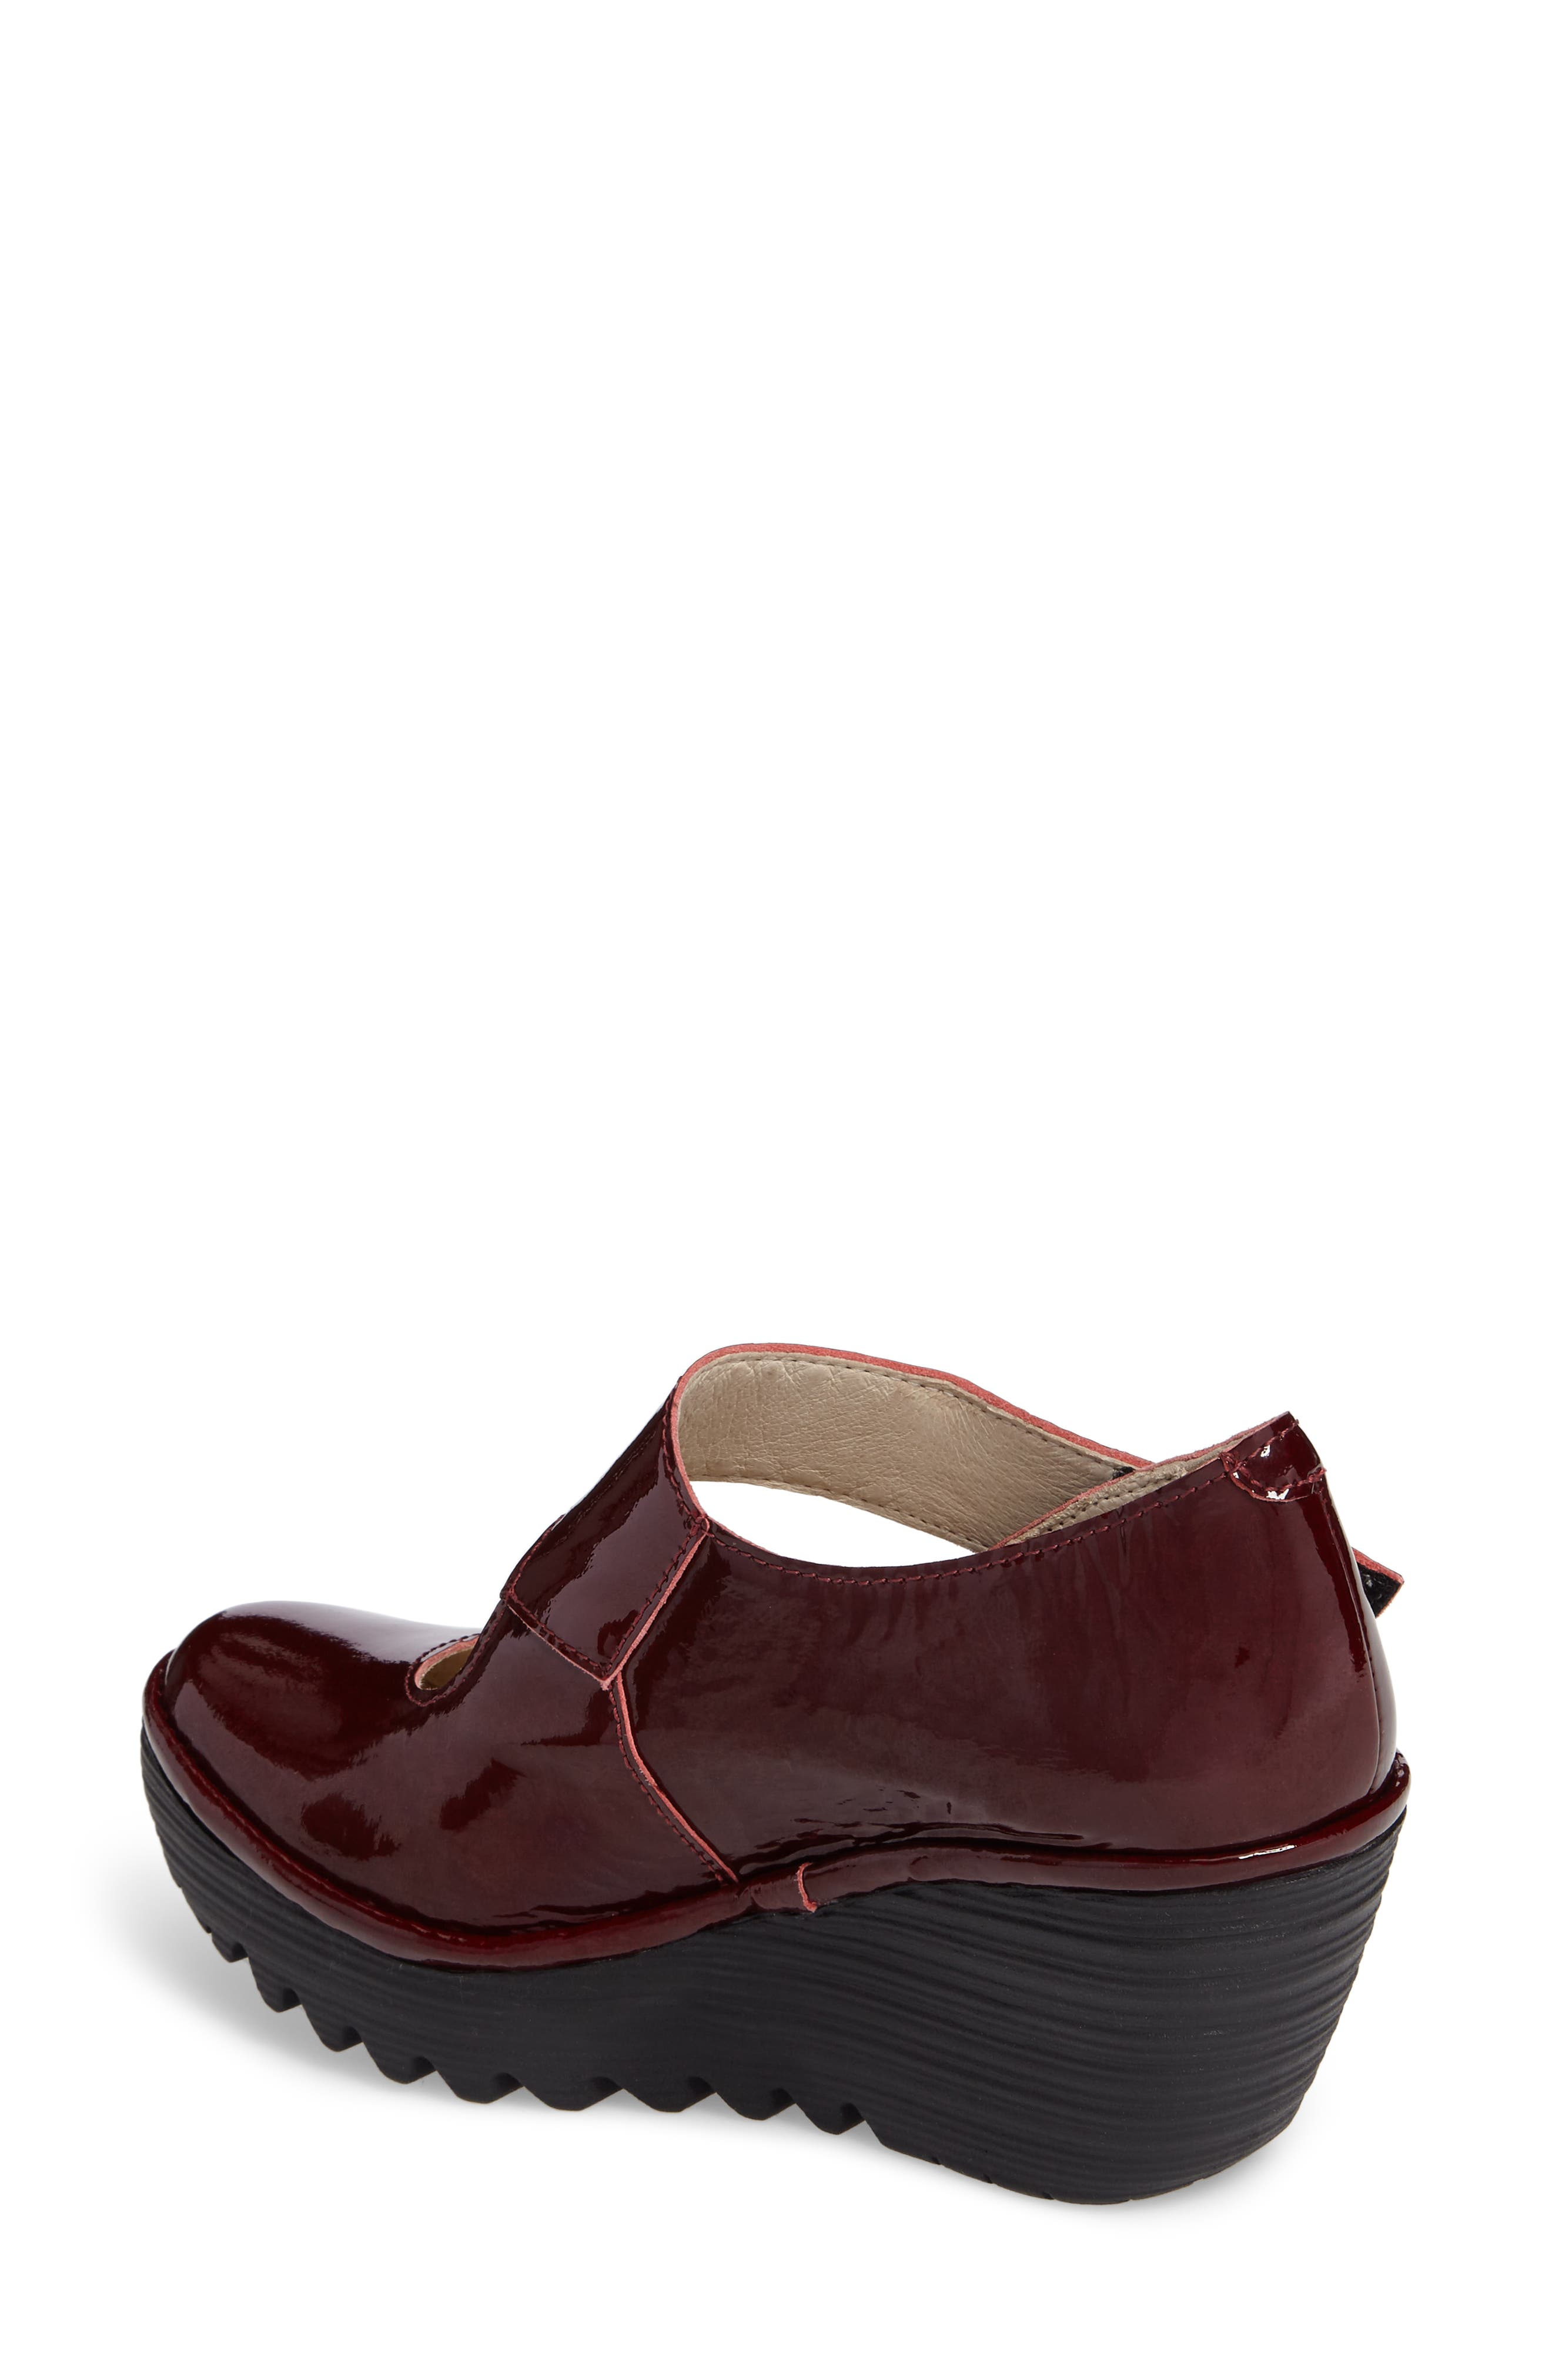 'Yasi' Wedge Pump,                             Alternate thumbnail 2, color,                             Cordoba Red Leather